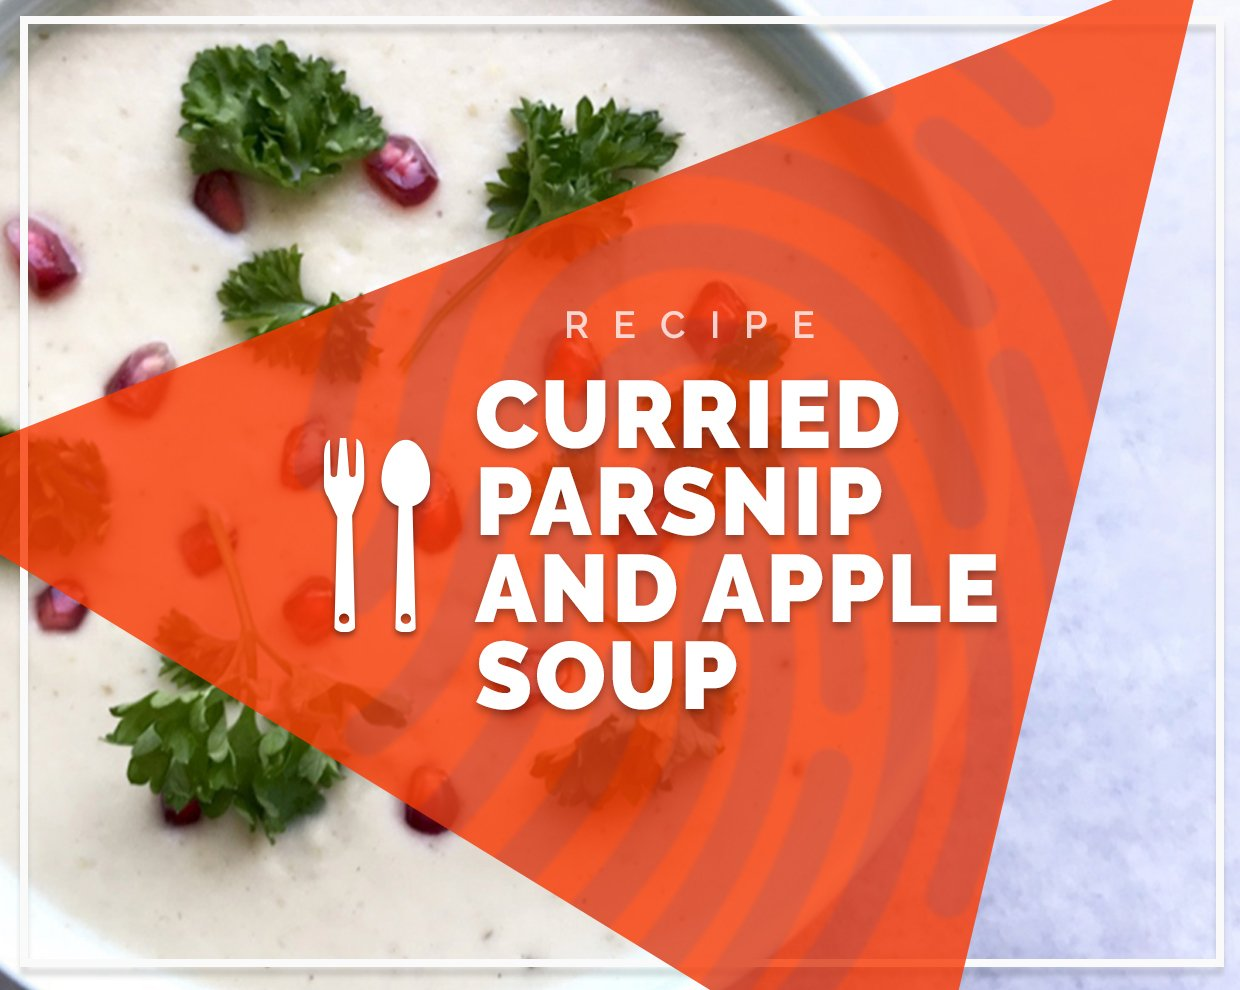 Curried Parsnip & Apple Soup